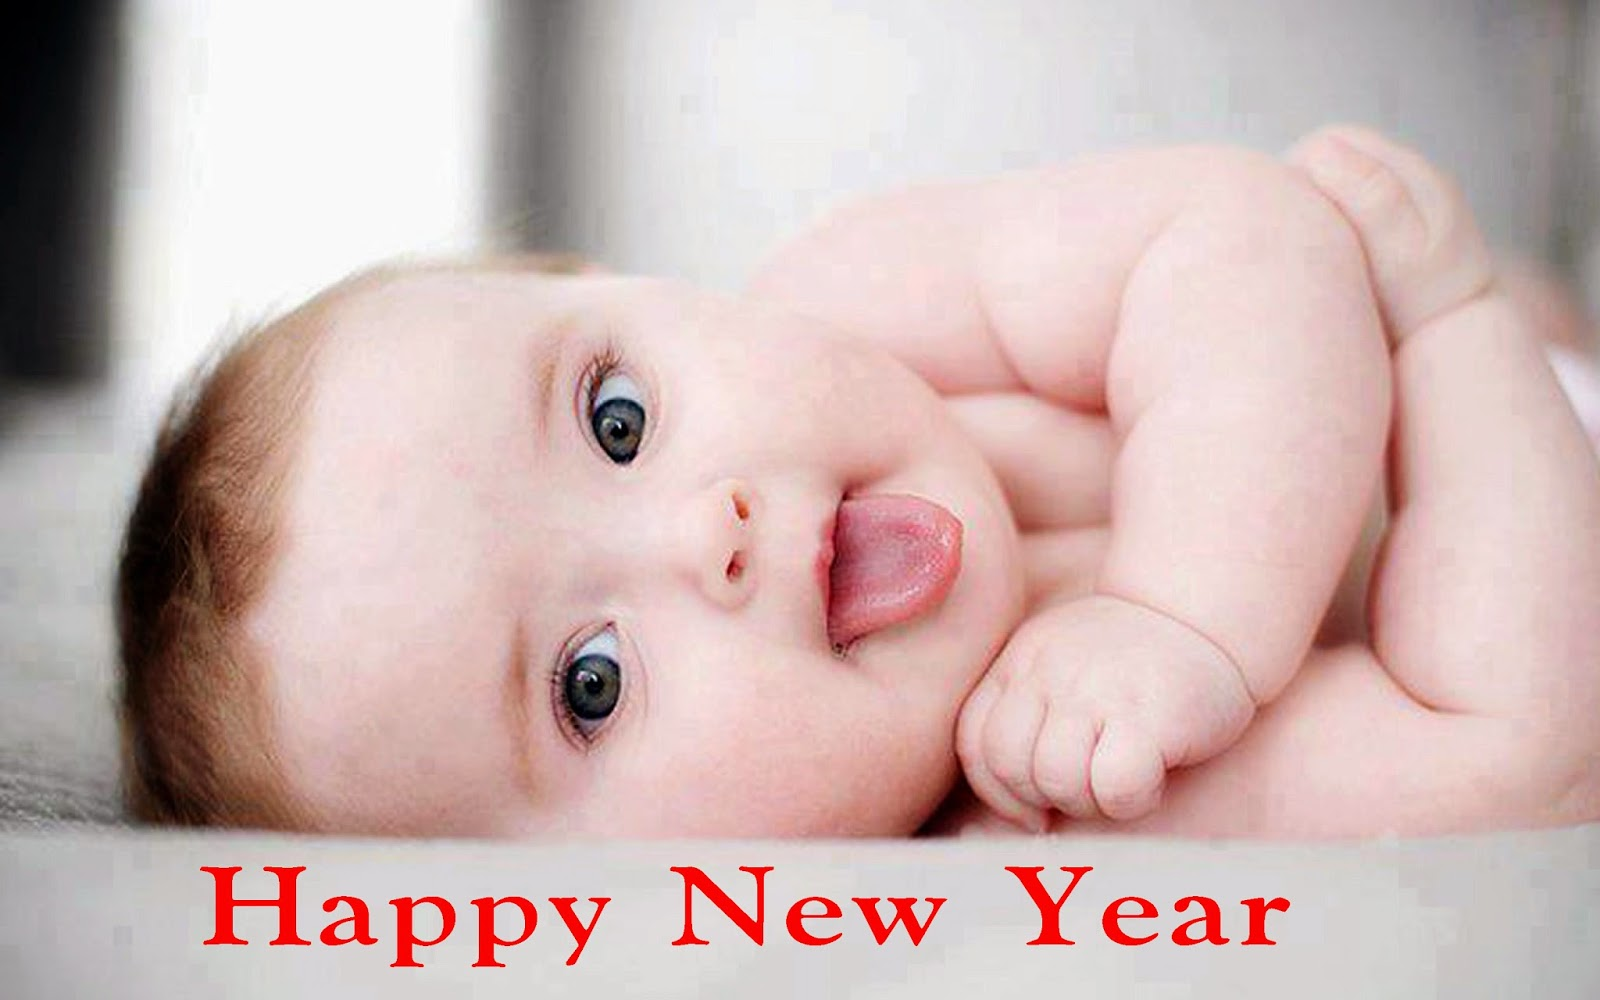 Cute Babies Pictures of Saying Happy New 2015   happy new year 2015     Cute Babies Happy new year 2015 hd pictures